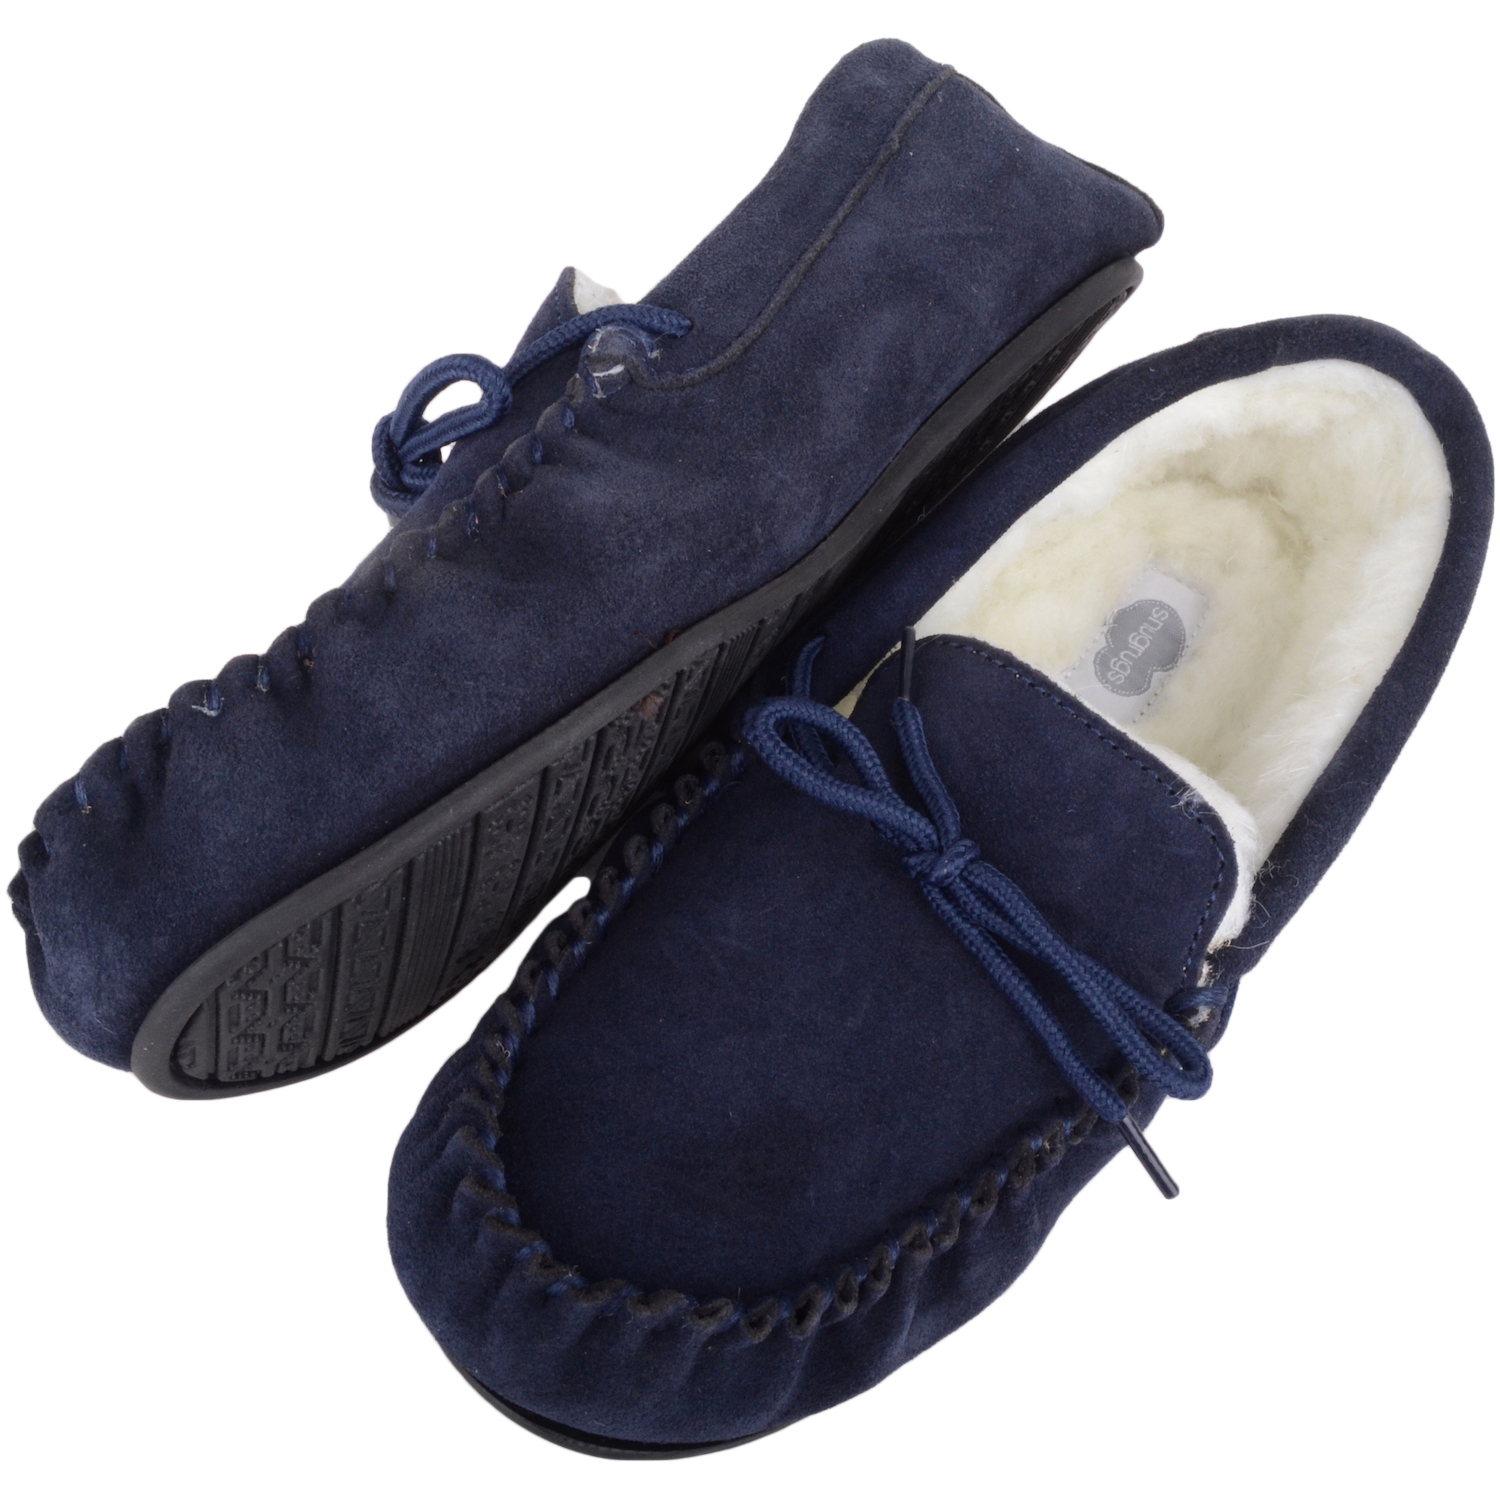 Snugrugs Wool Lined Moccasin with Rubber Sole - Navy